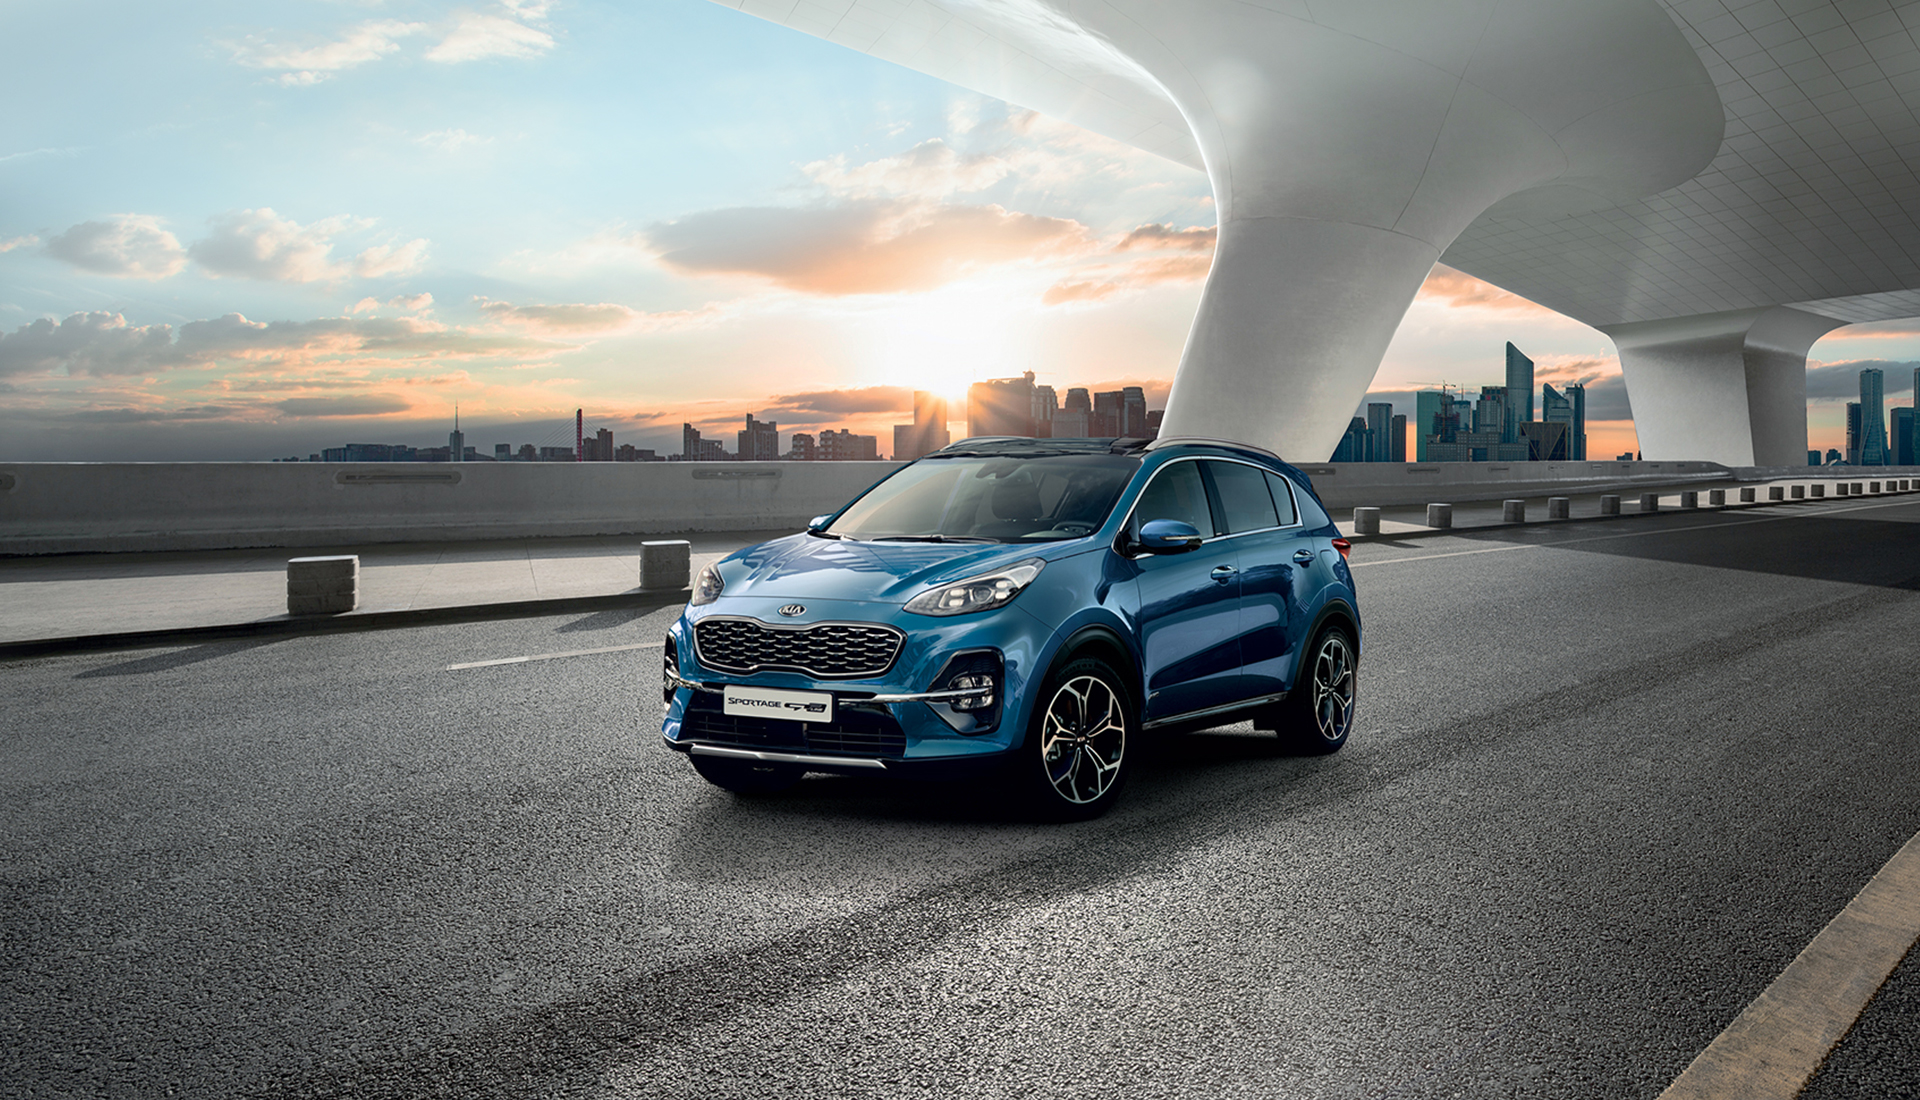 The Kia Sportage outdoor